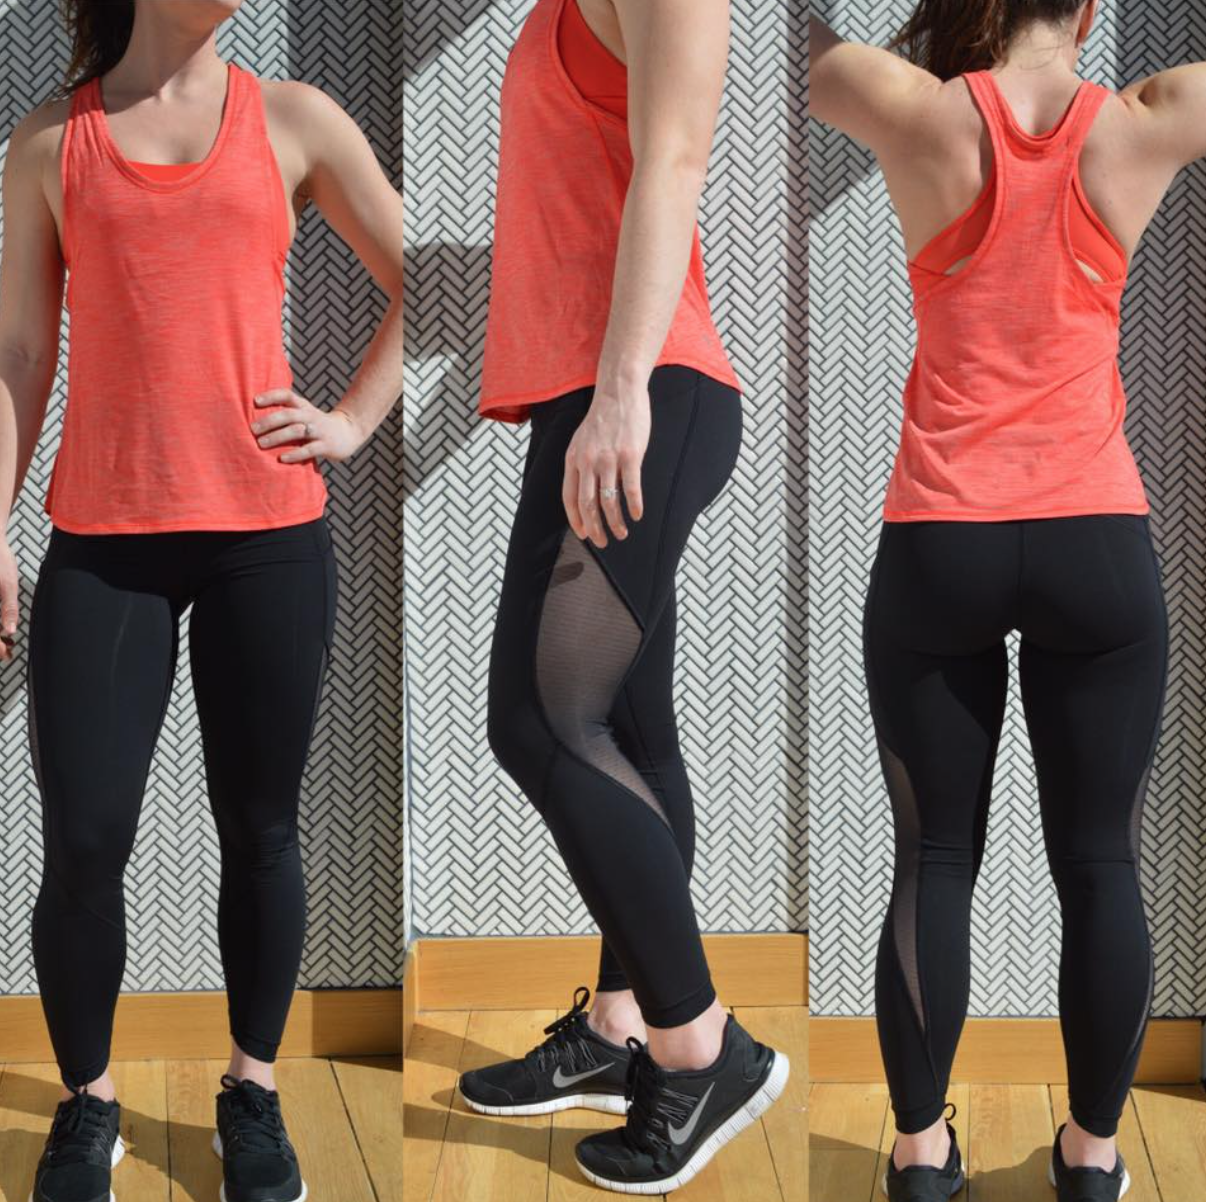 https://api.shopstyle.com/action/apiVisitRetailer?url=https%3A%2F%2Fshop.lululemon.com%2Fp%2Fwomen-tanks%2FGlide-And-Stride-Tank%2F_%2Fprod8431300%3Frcnt%3D13%26N%3D891%26cnt%3D27%26color%3DLW1ADIS_8650&site=www.shopstyle.ca&pid=uid6784-25288972-7